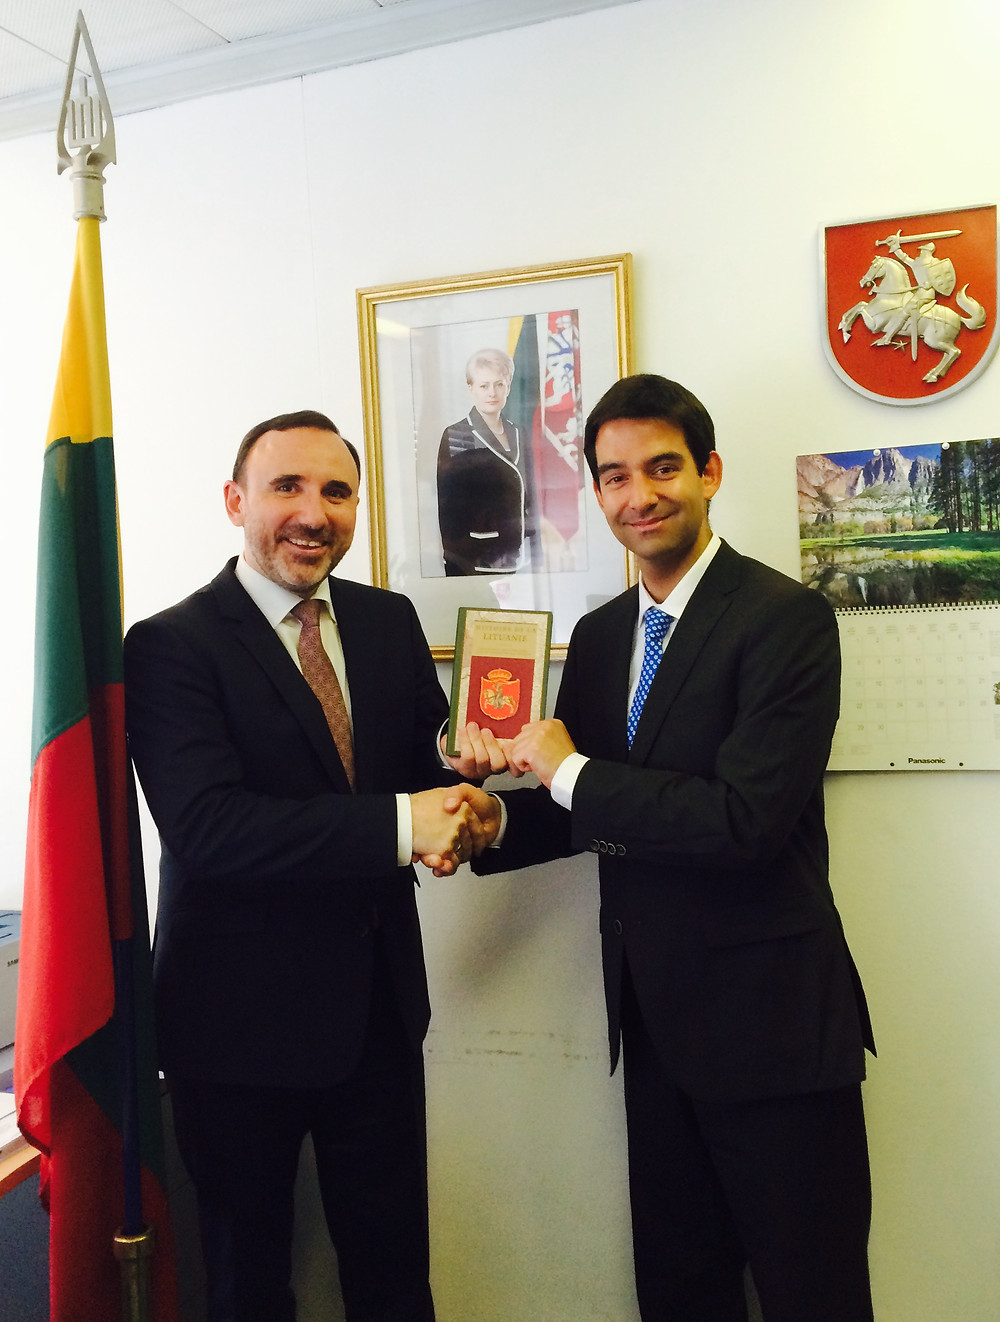 HE Dr. Arūnas Gelūnas (left) presents a book on the history of Lithuania to Mr. Hrishikesa Madhvani (right)